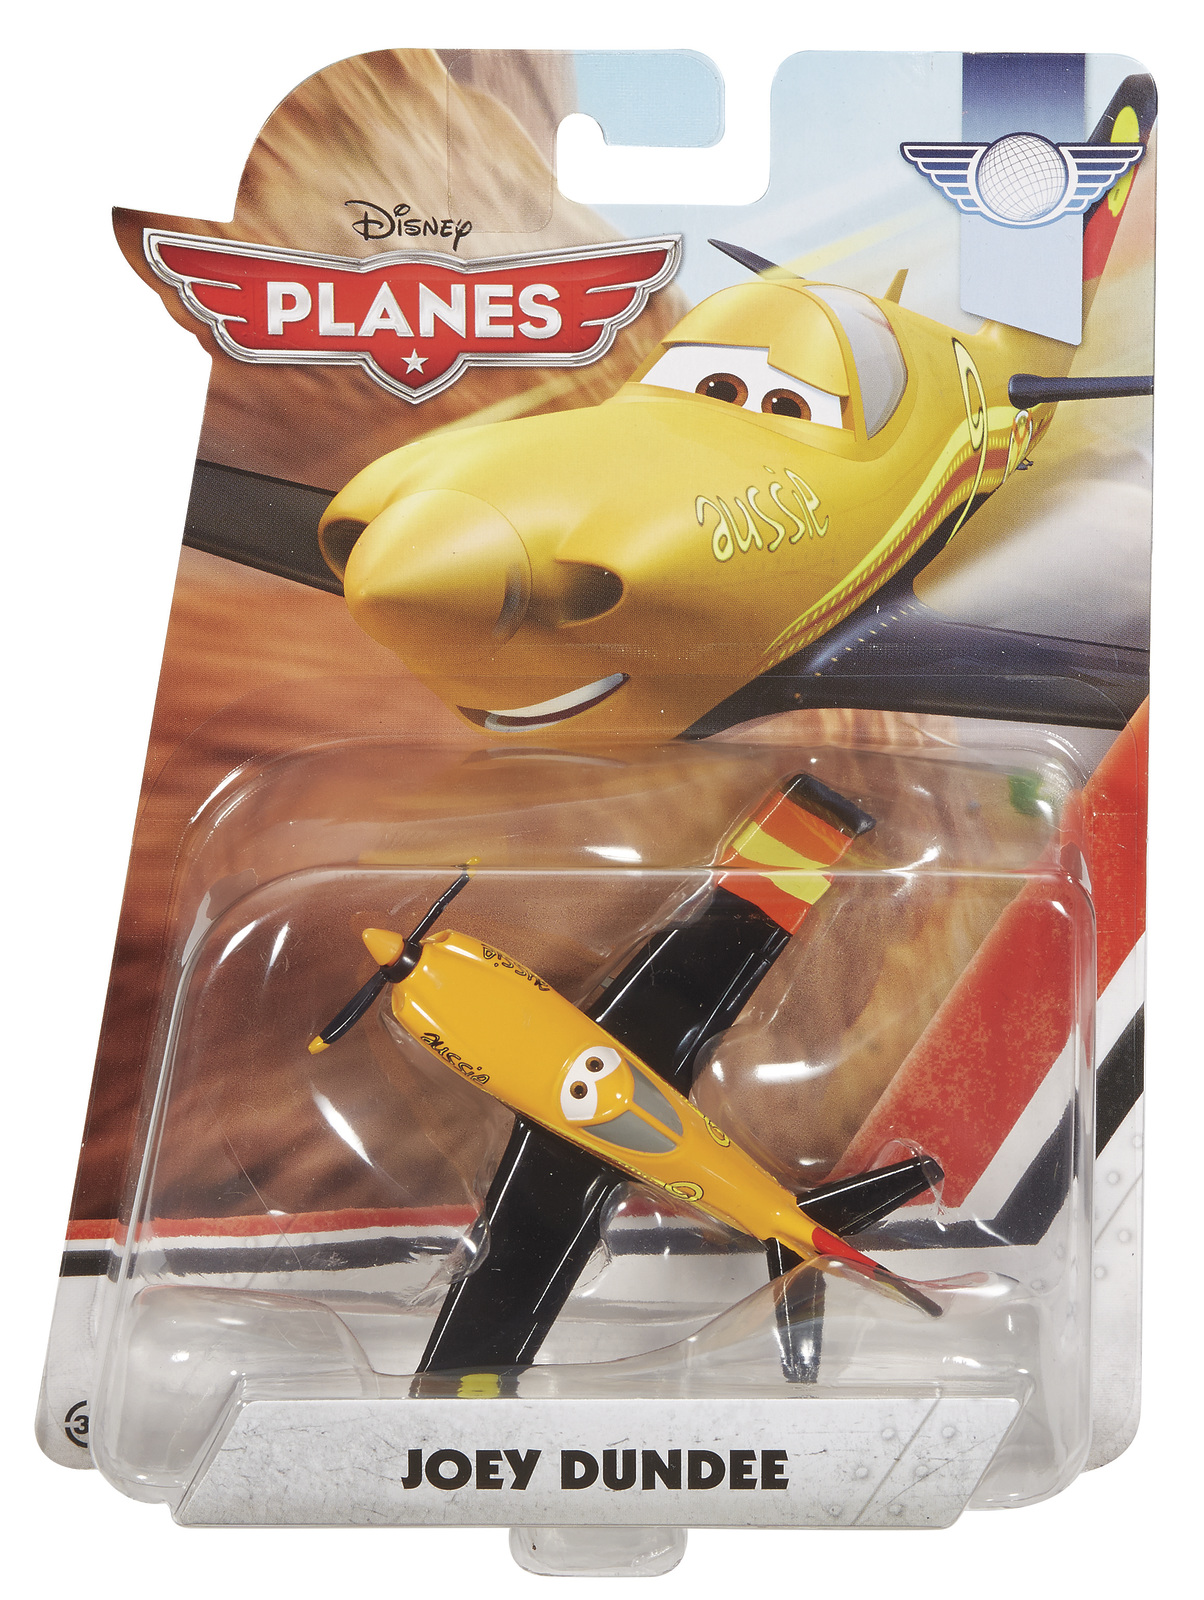 Planes Die-cast Vehicles - Joey Dundee | Toy | at Mighty Ape NZ